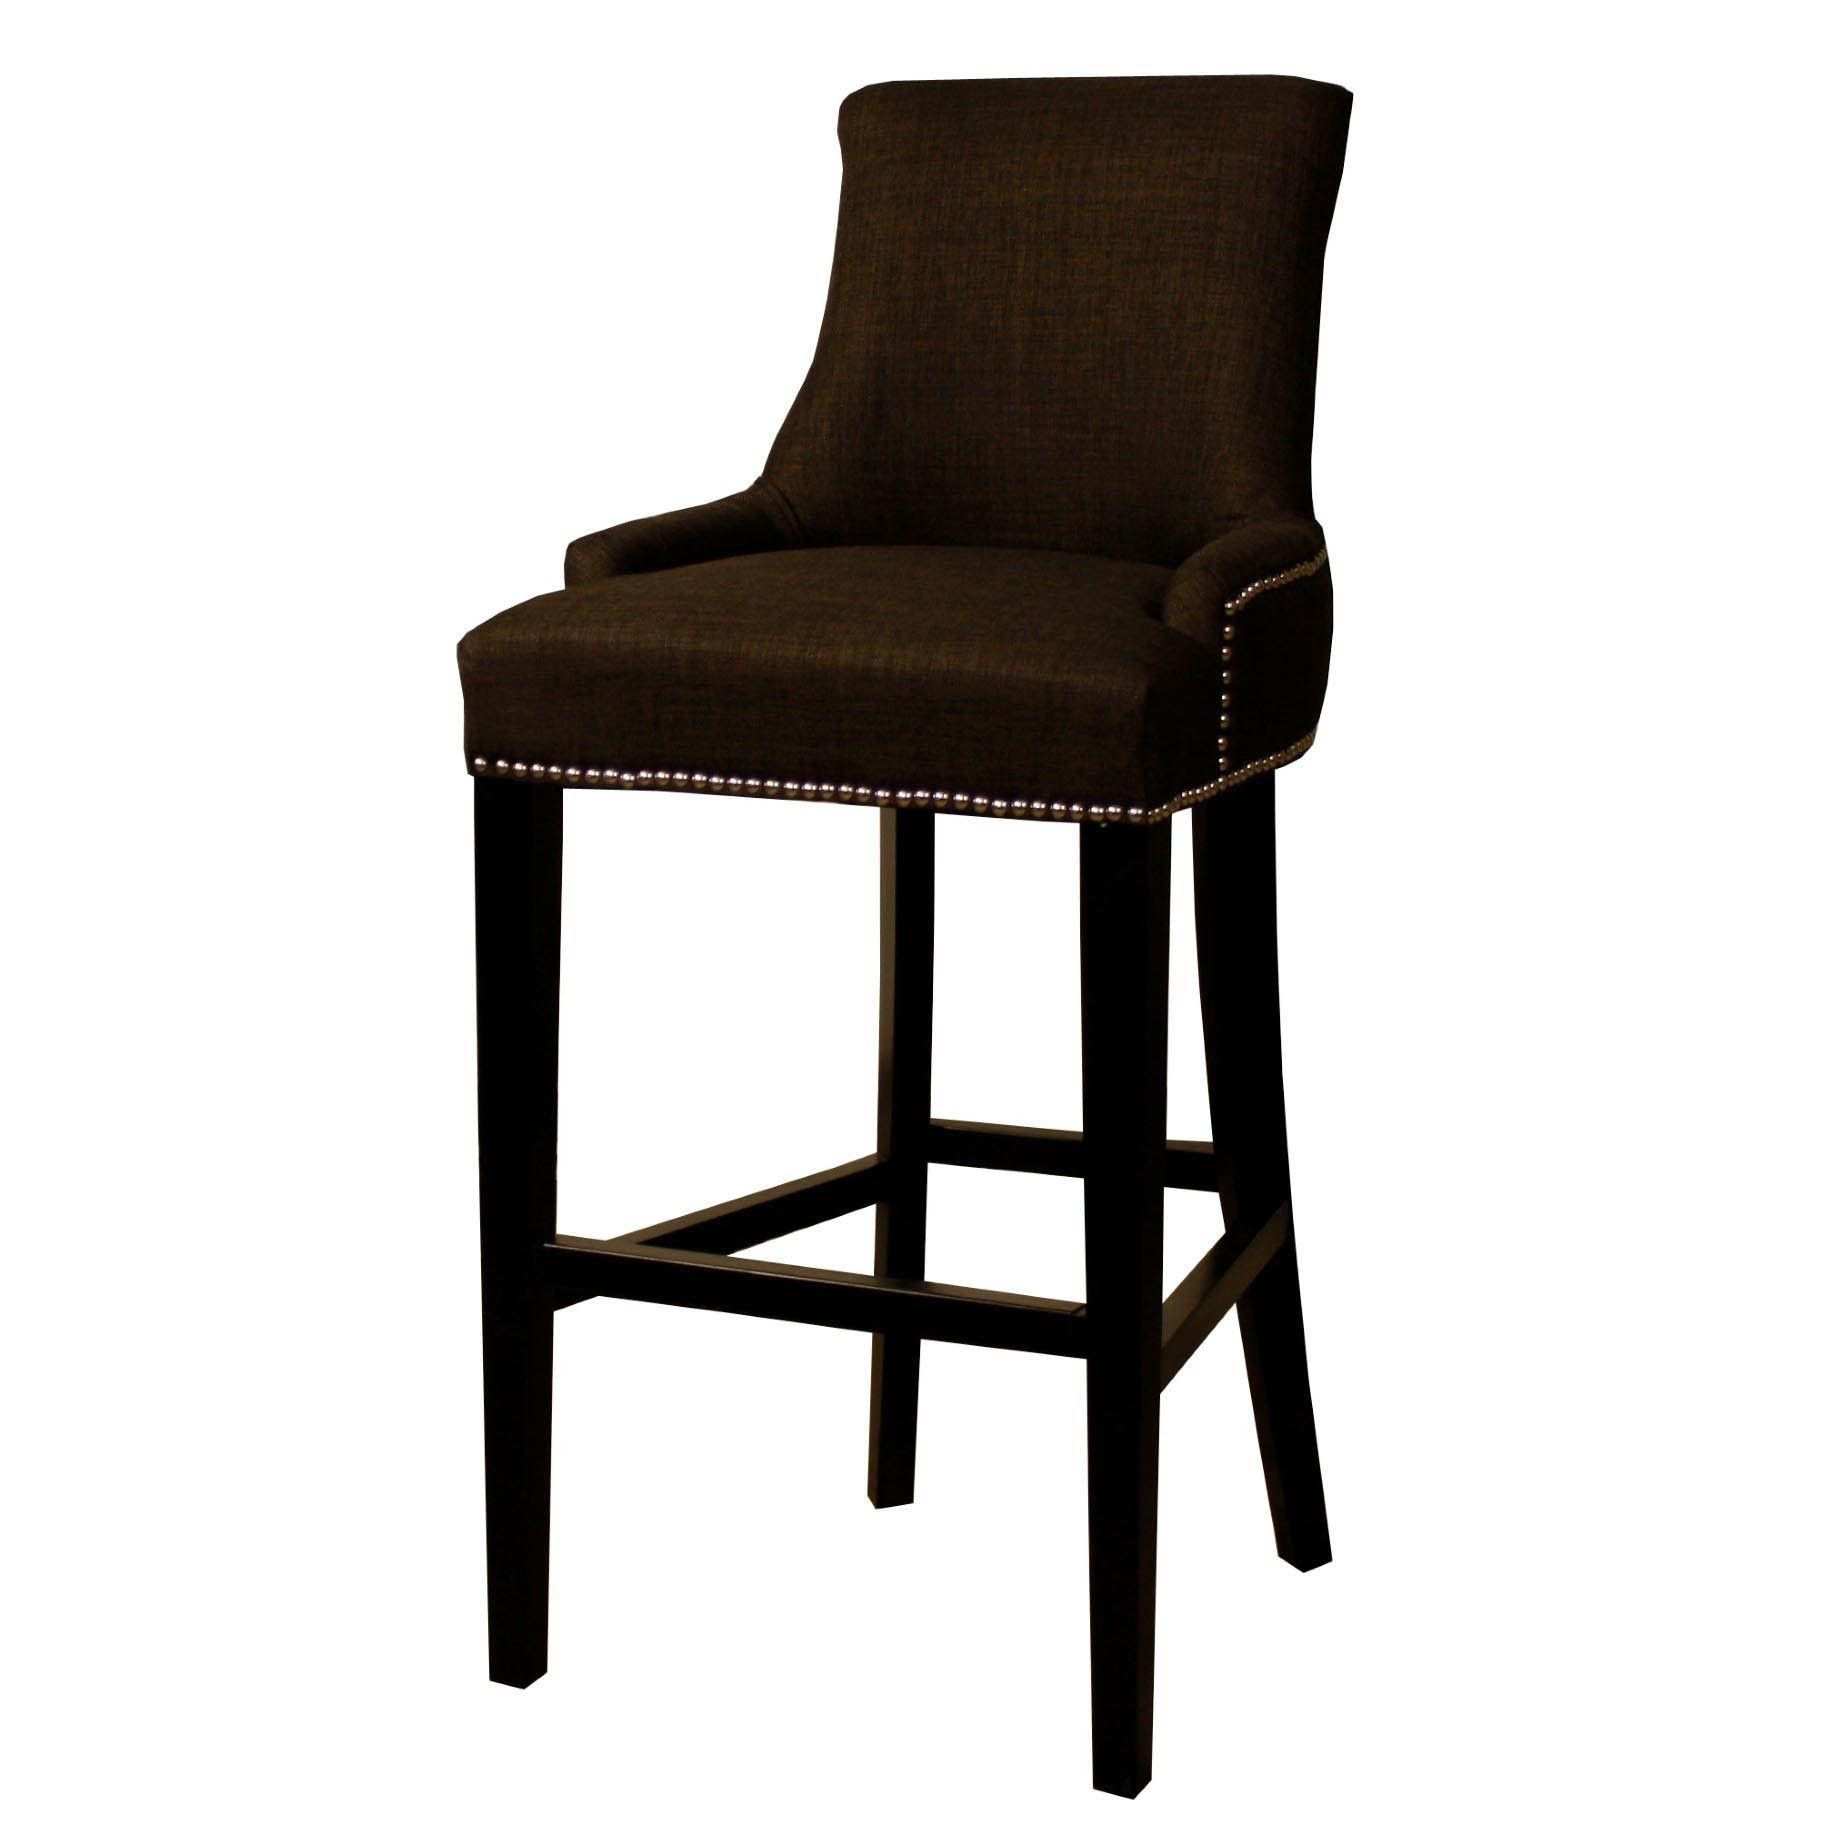 Charlotte Fabric Kitchen Counter Stool Charcoal Brown